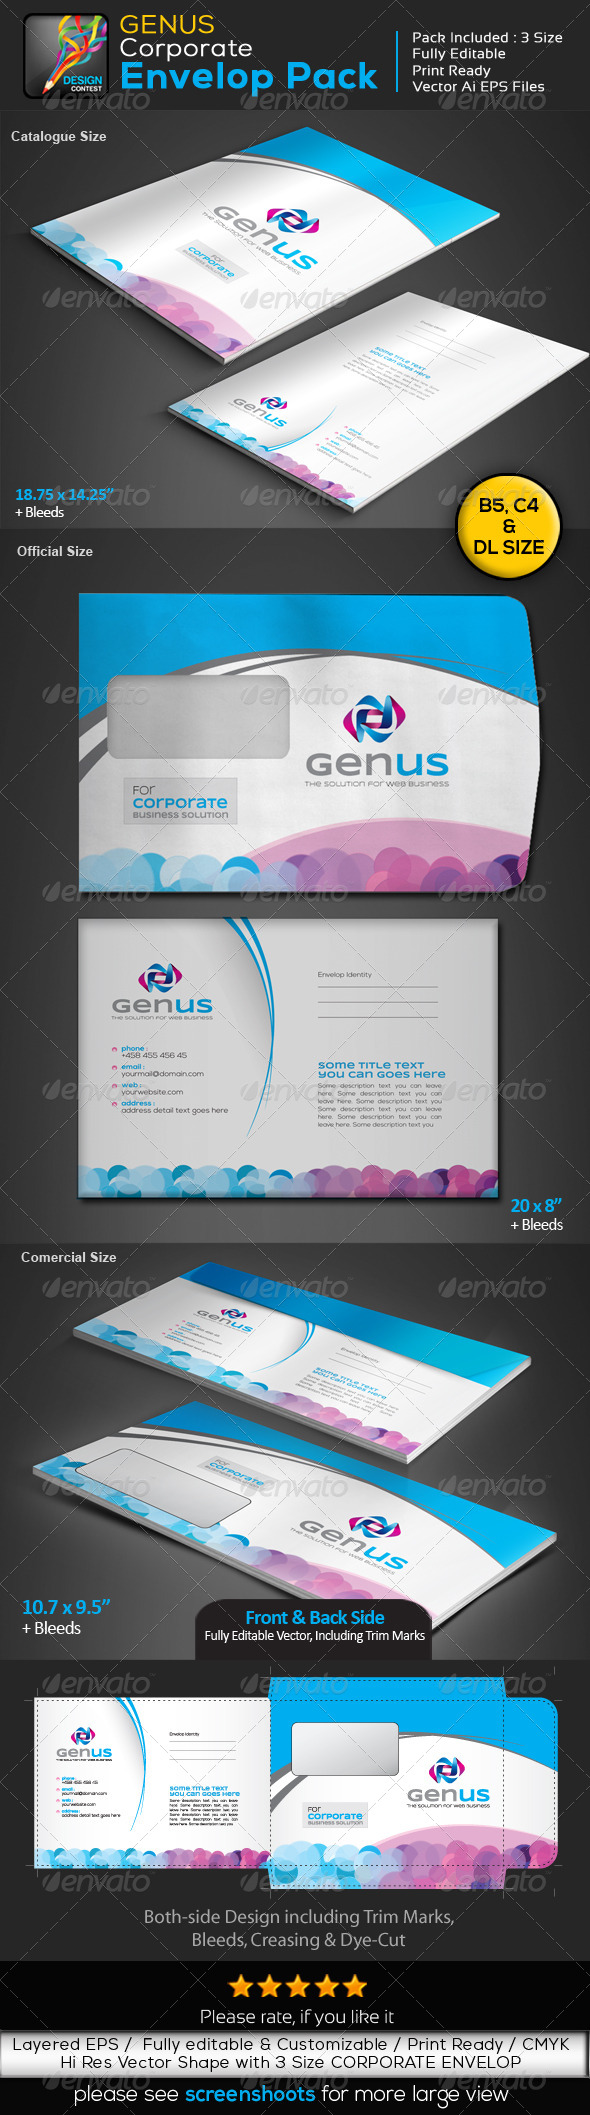 GraphicRiver GENUS Corporate Clean Creative Envelop Pack 5902310